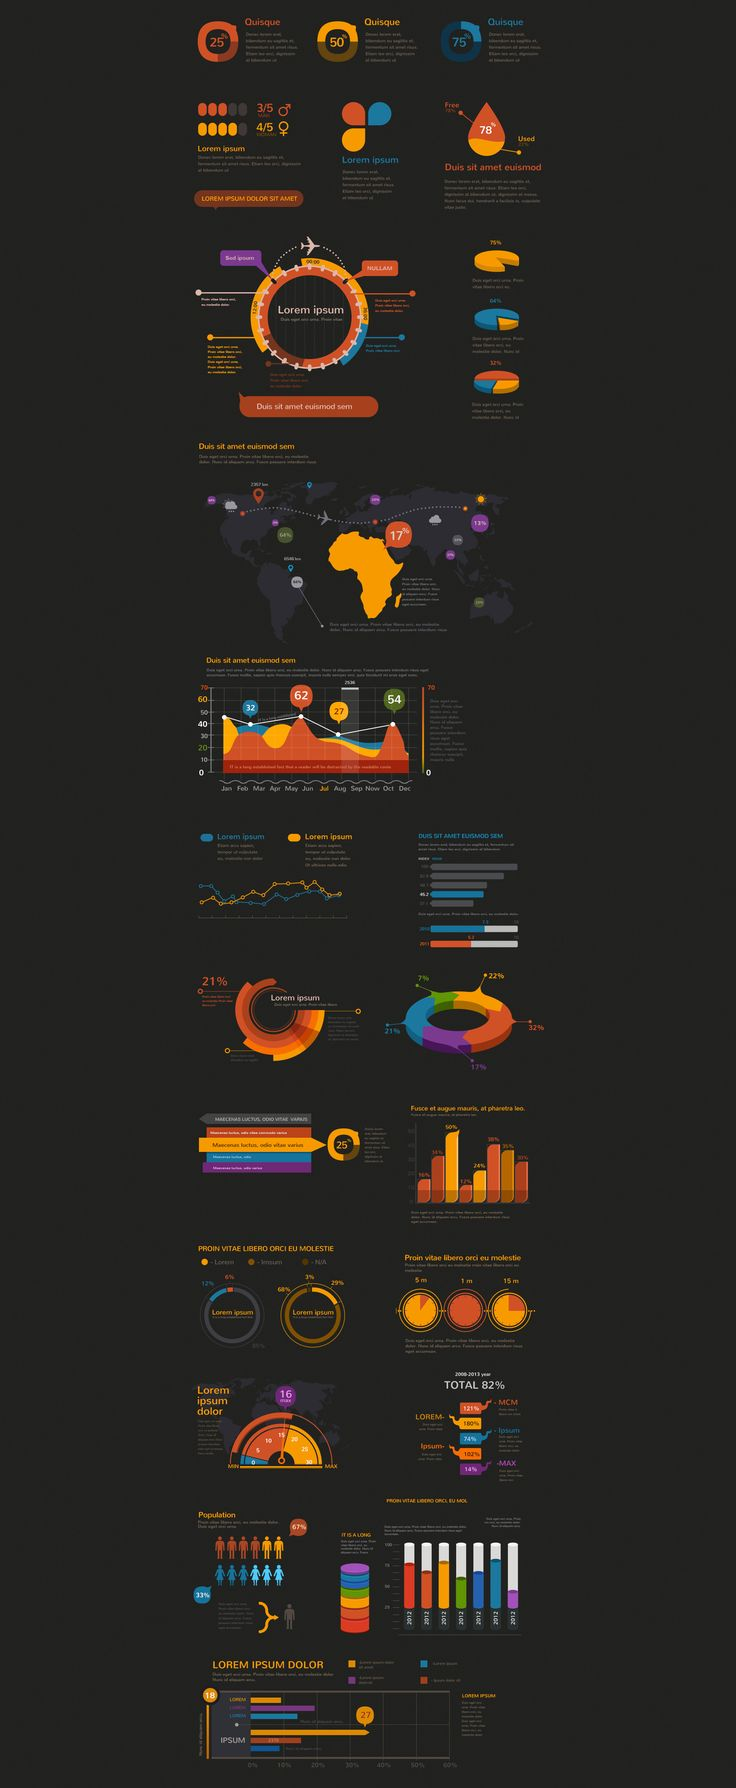 http://dribbble.com/shots/1179264-Crooked-Stats-Infographic-Kit/attachments/154885